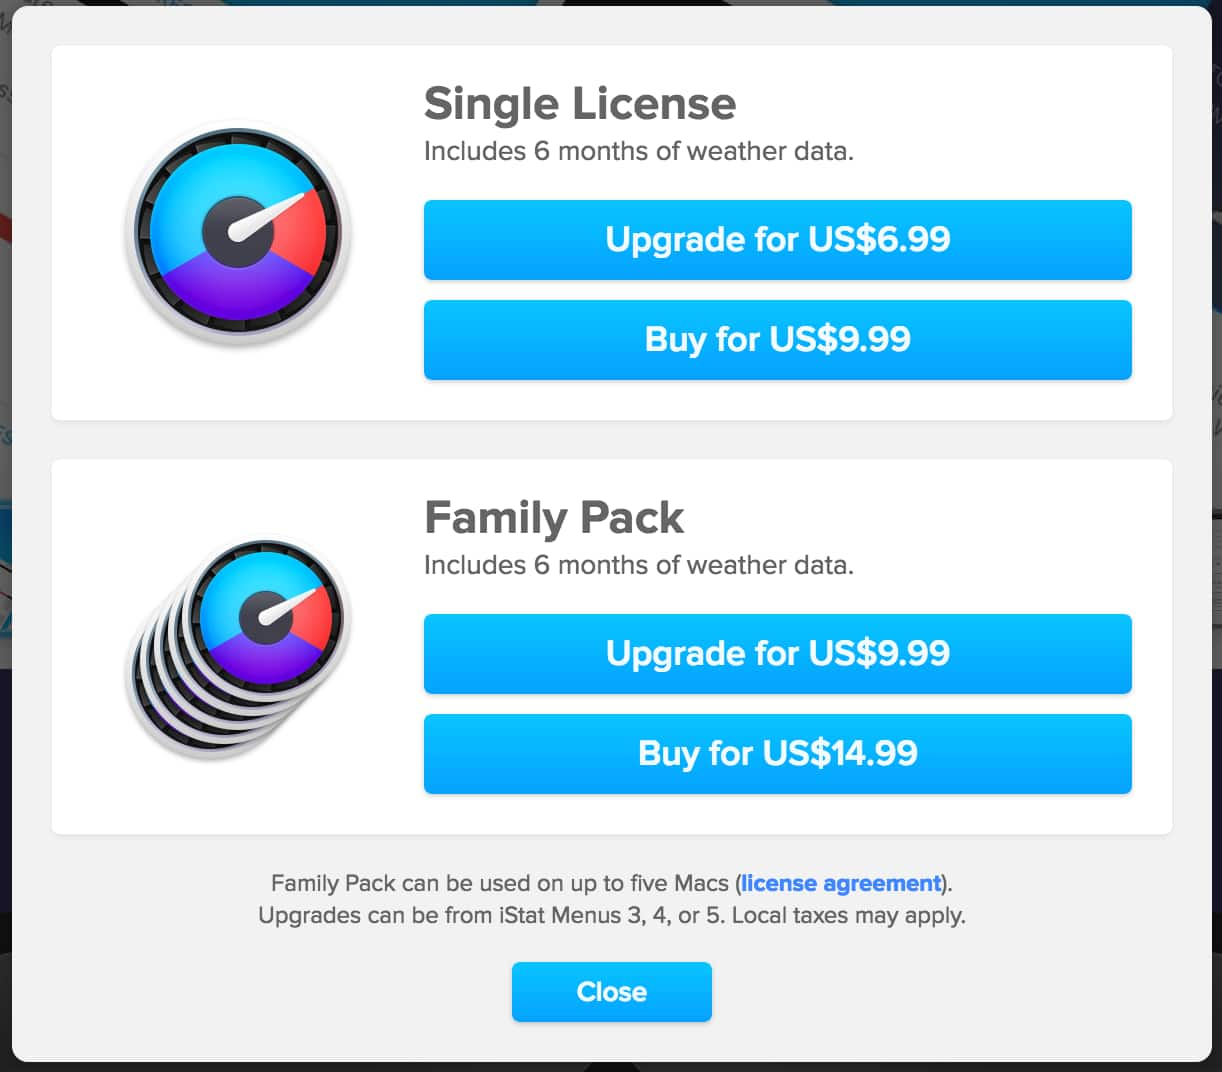 iStat Menus - Single License 40% off @ $9.99 ($6.99 upgrade) - Family Pack 44% off @ $14.99 ($9.99 upgrade)